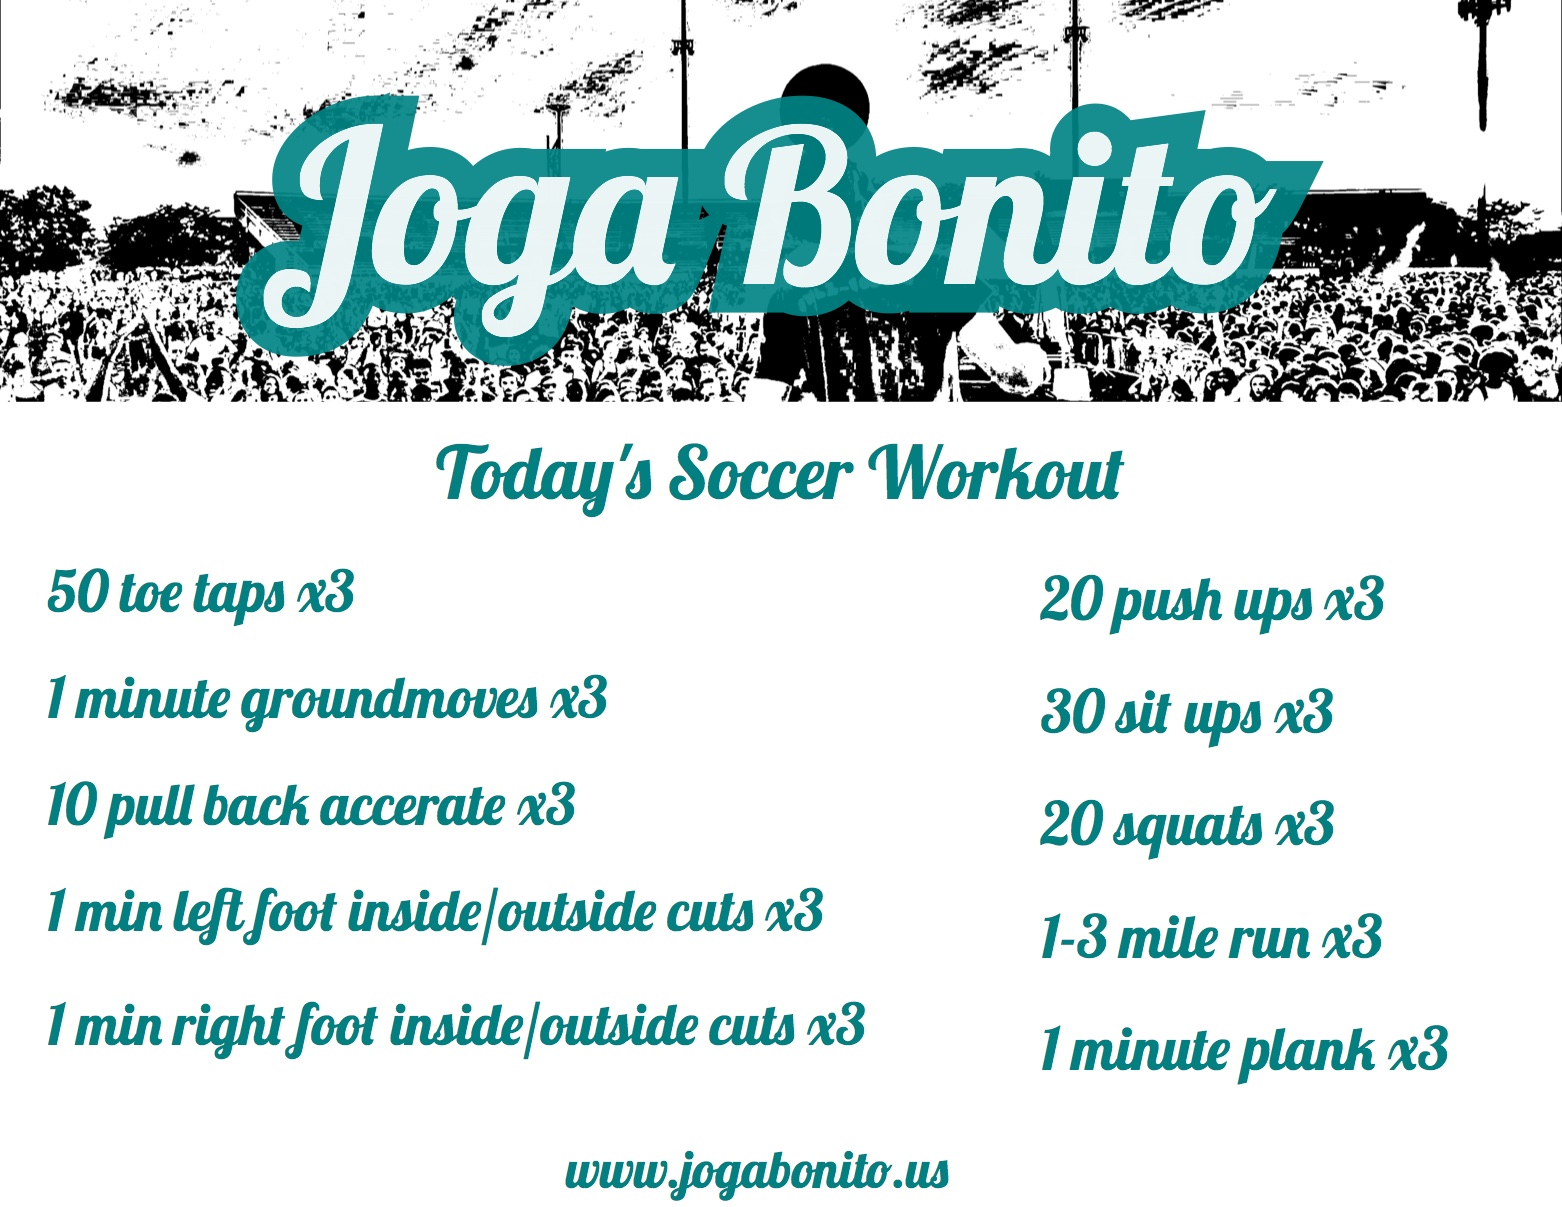 Today's Soccer Workout Aprill 11